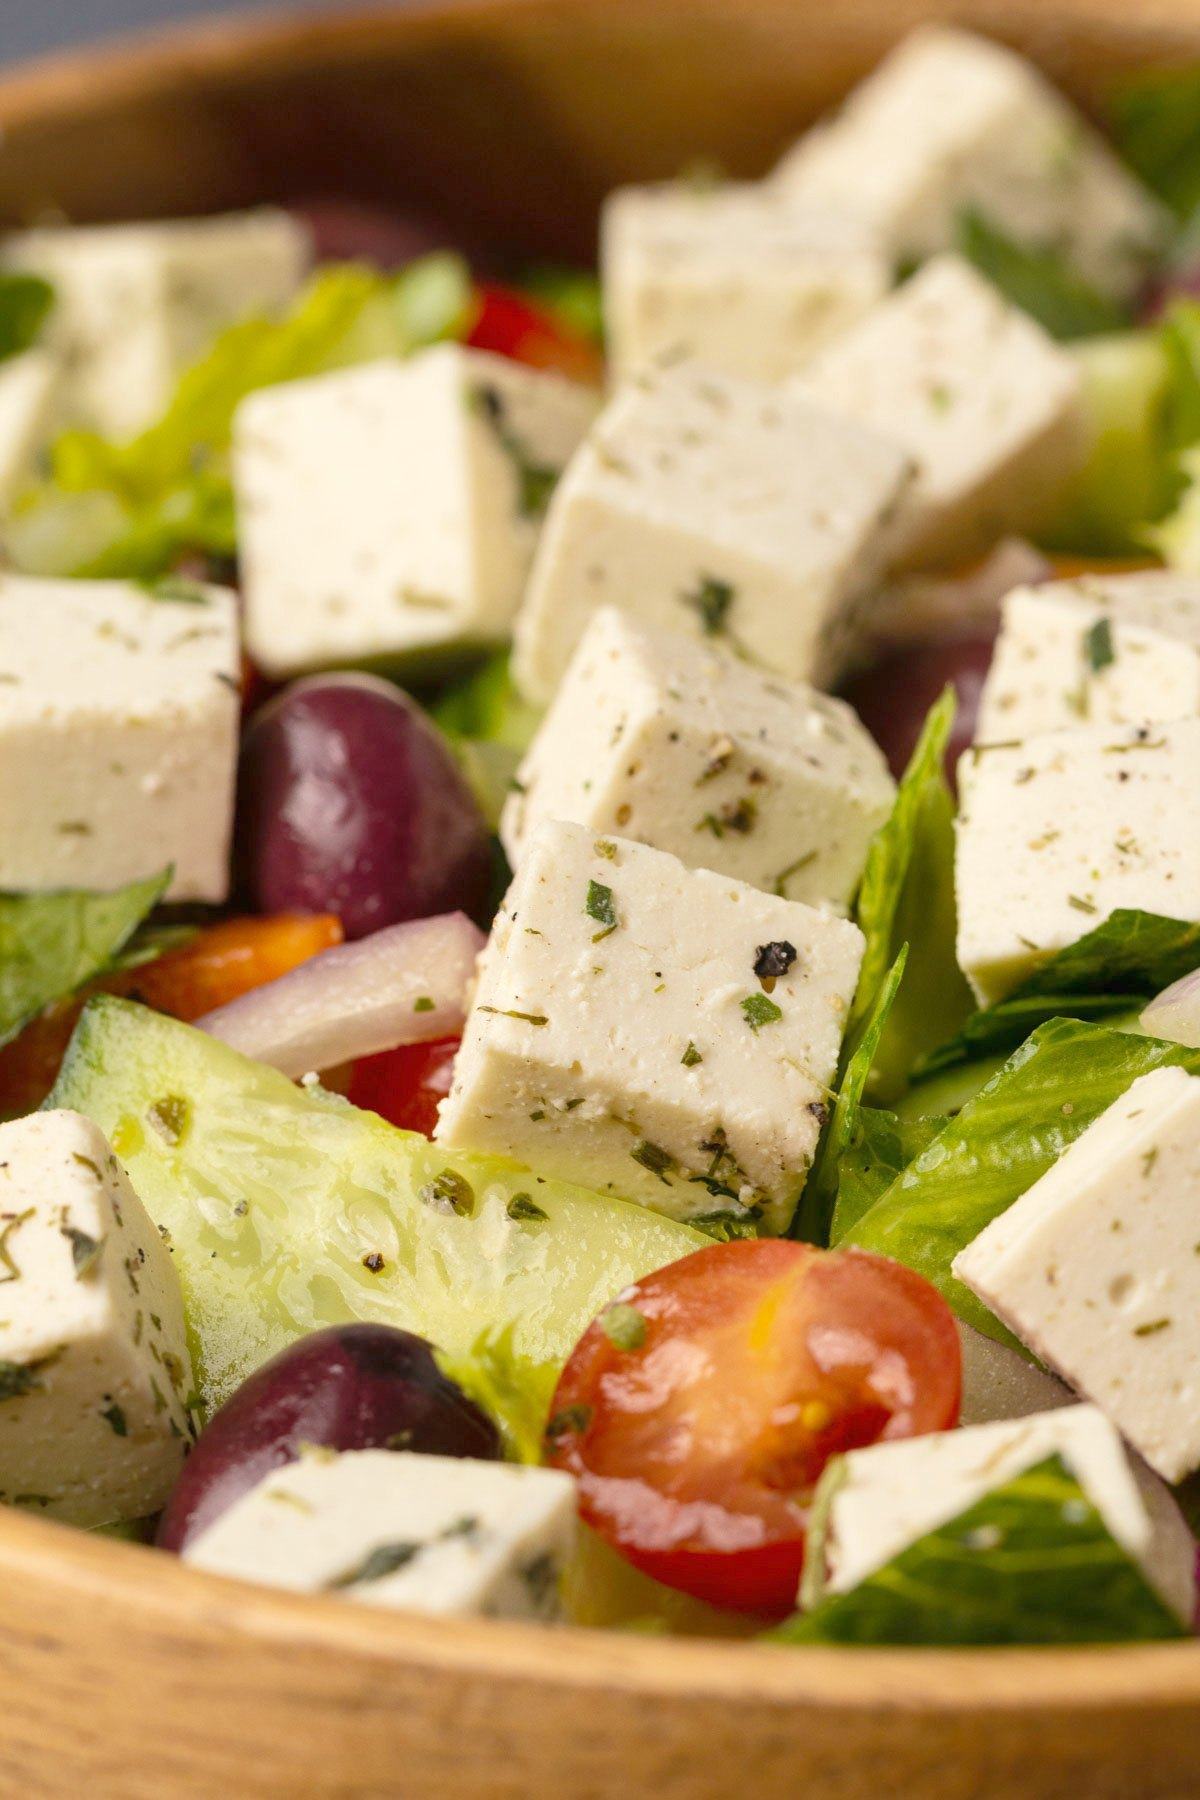 Vegan feta on top of a Greek salad.